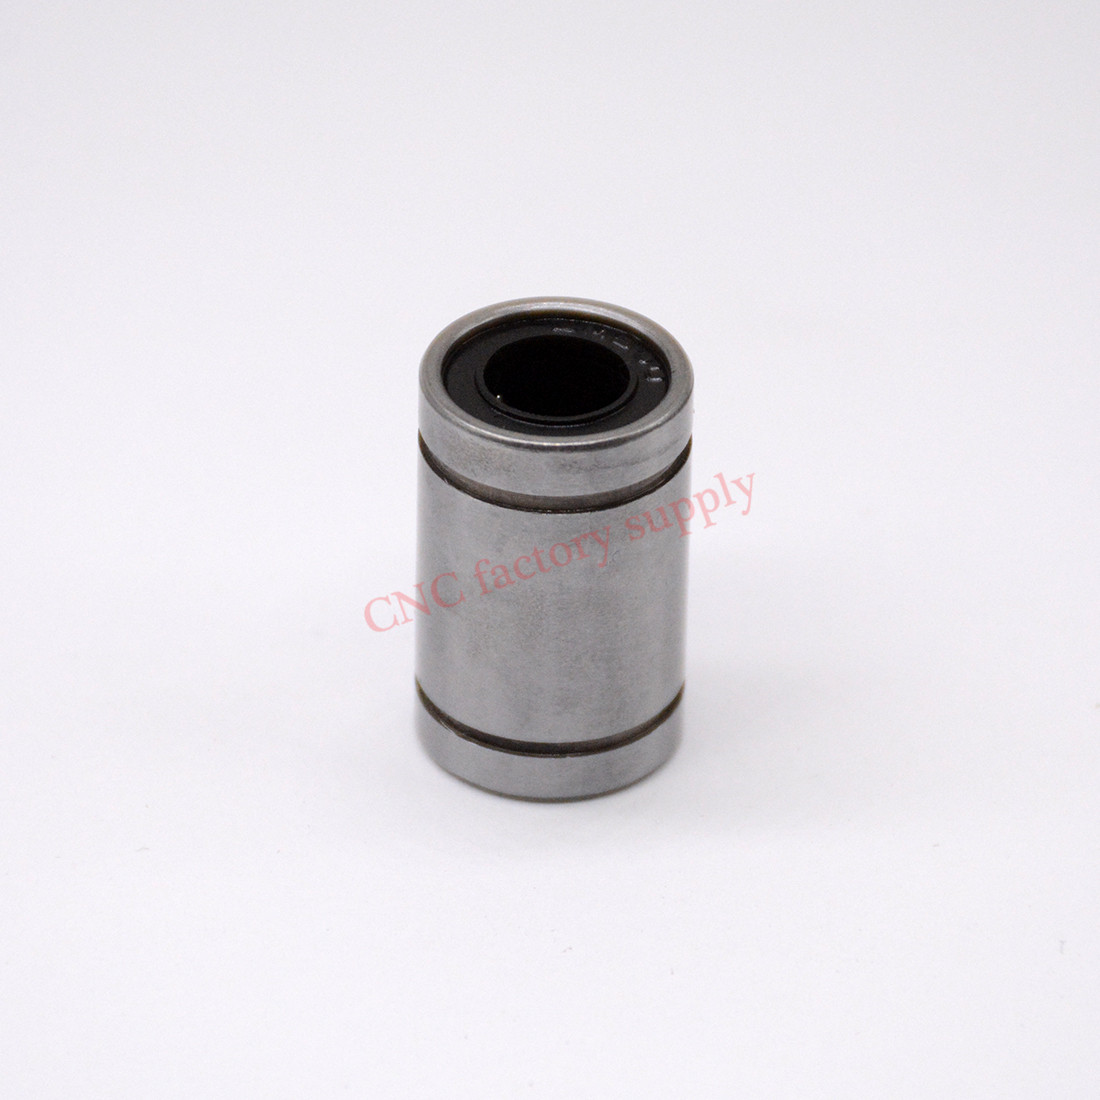 Free shipping LM12UU Linear Bushing 12mm CNC Linear Bearings 12pcs free shipping lm60uu 60mm linear bushing cnc linear bearings